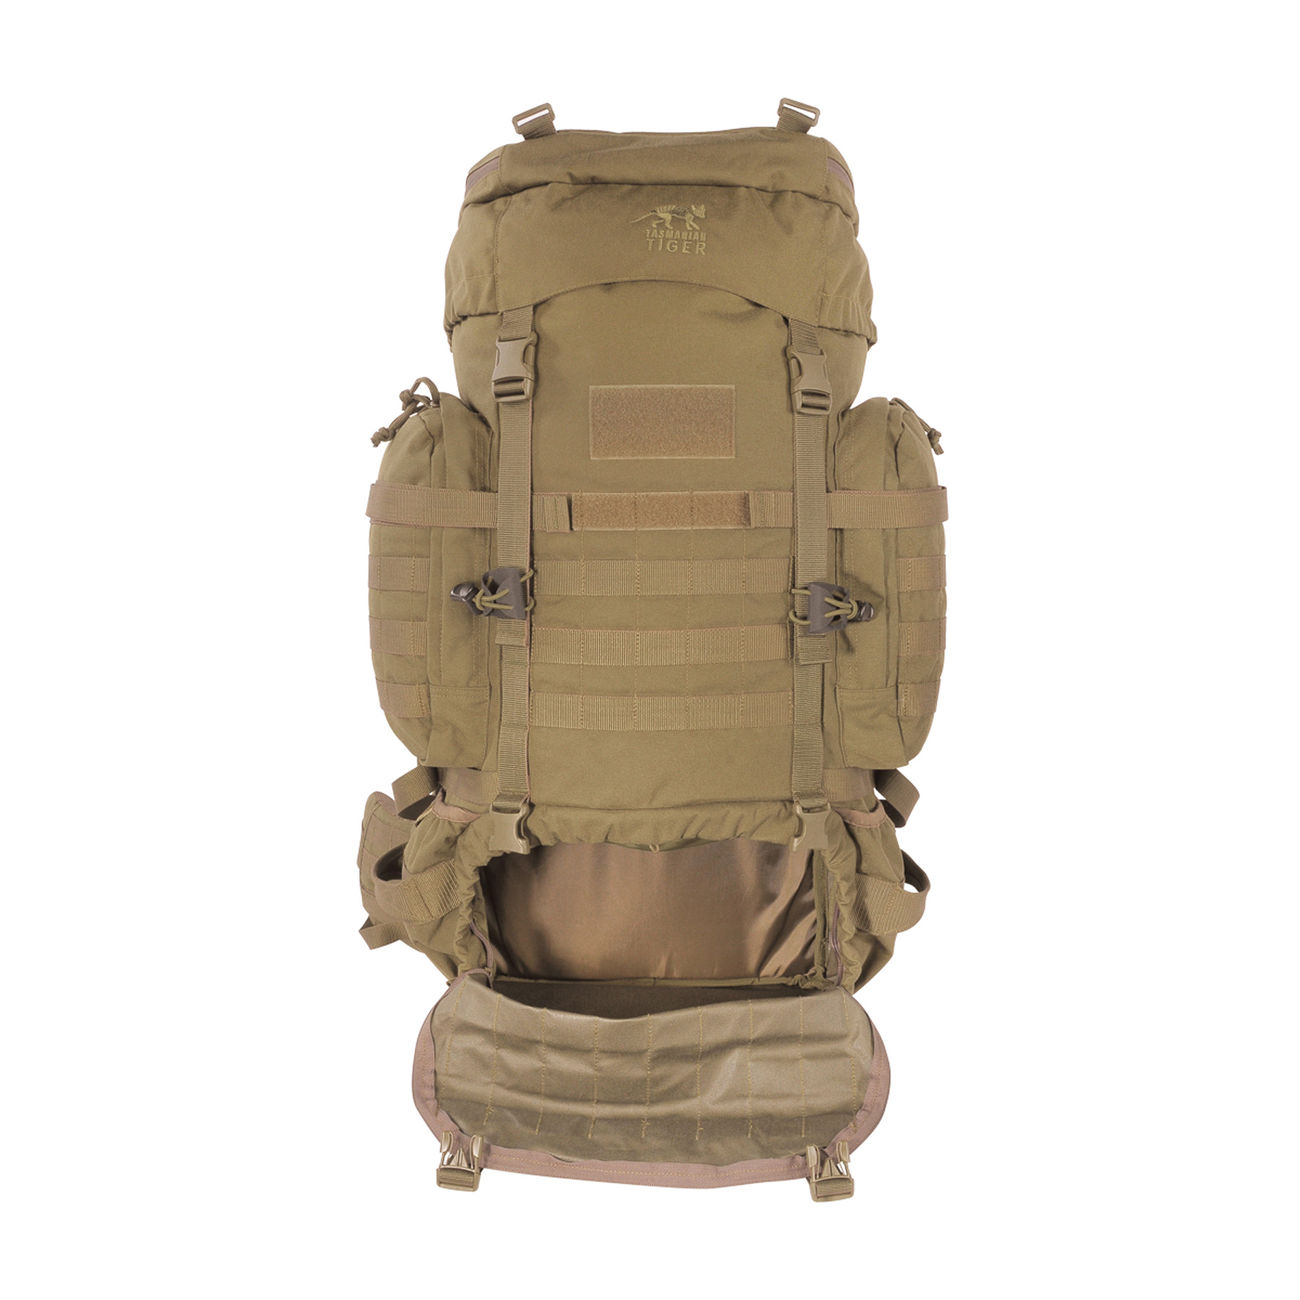 TT Rucksack Raid Pack MK III coyote brown 2